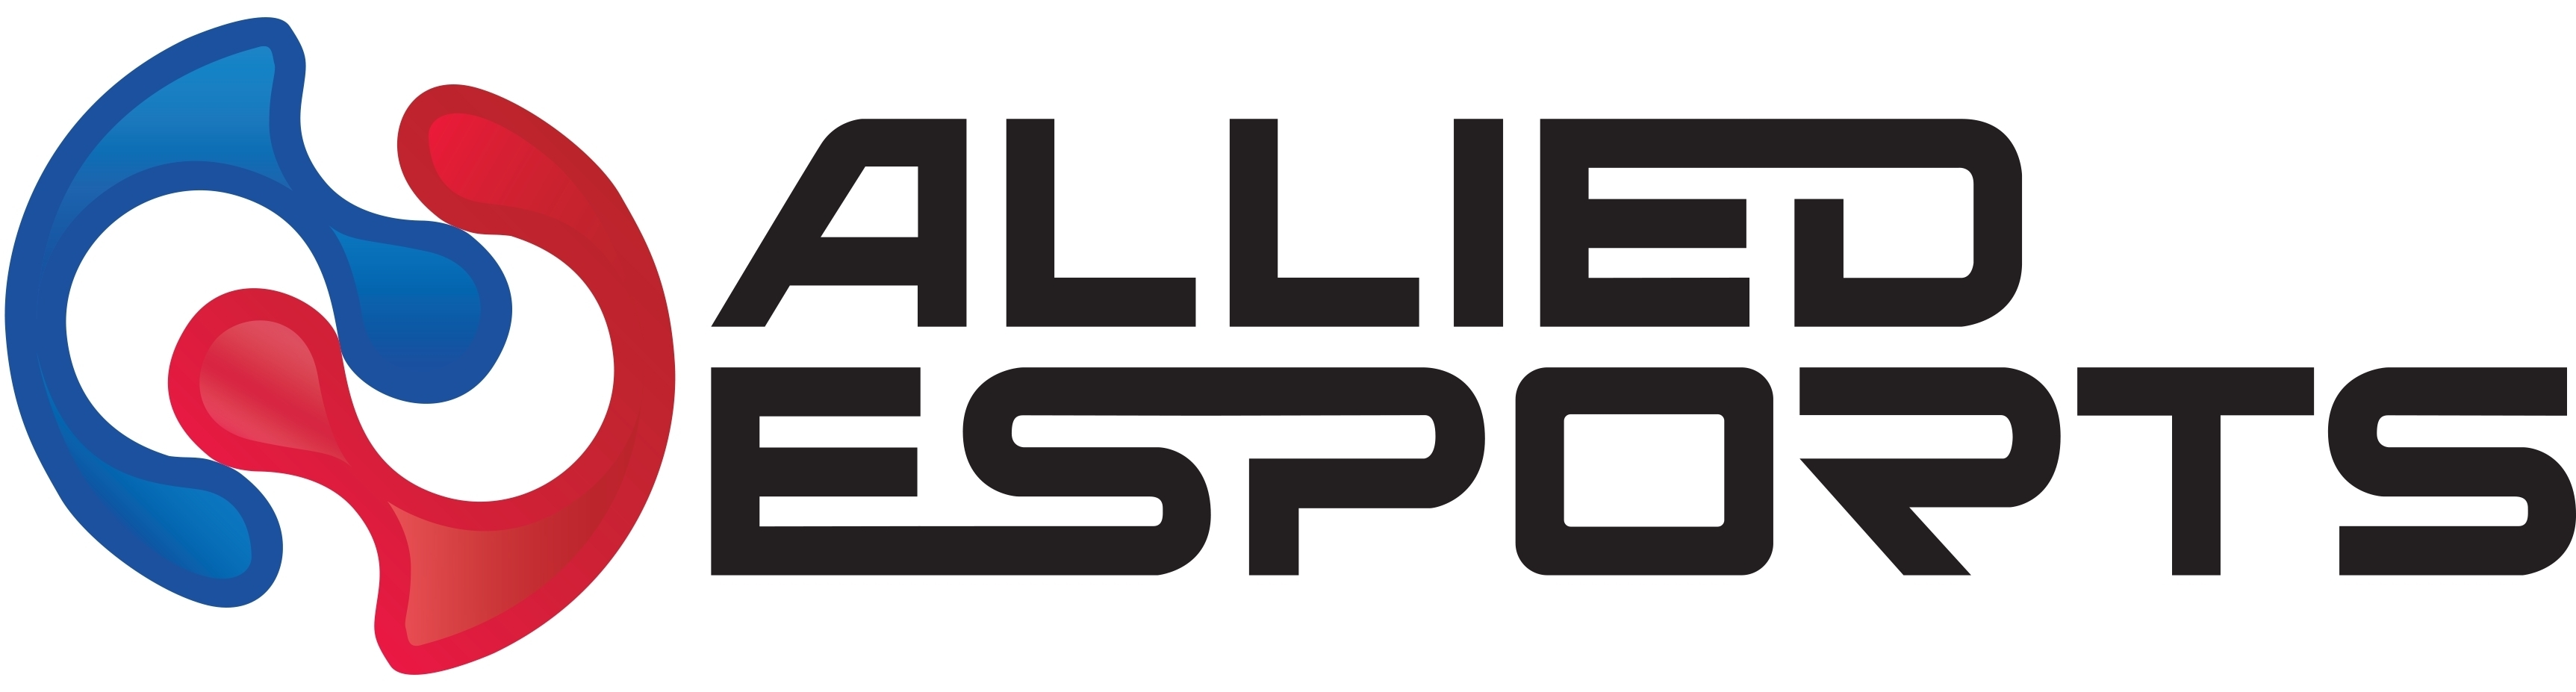 Black Ridge Acquisition Corp  and Allied Esports to Present